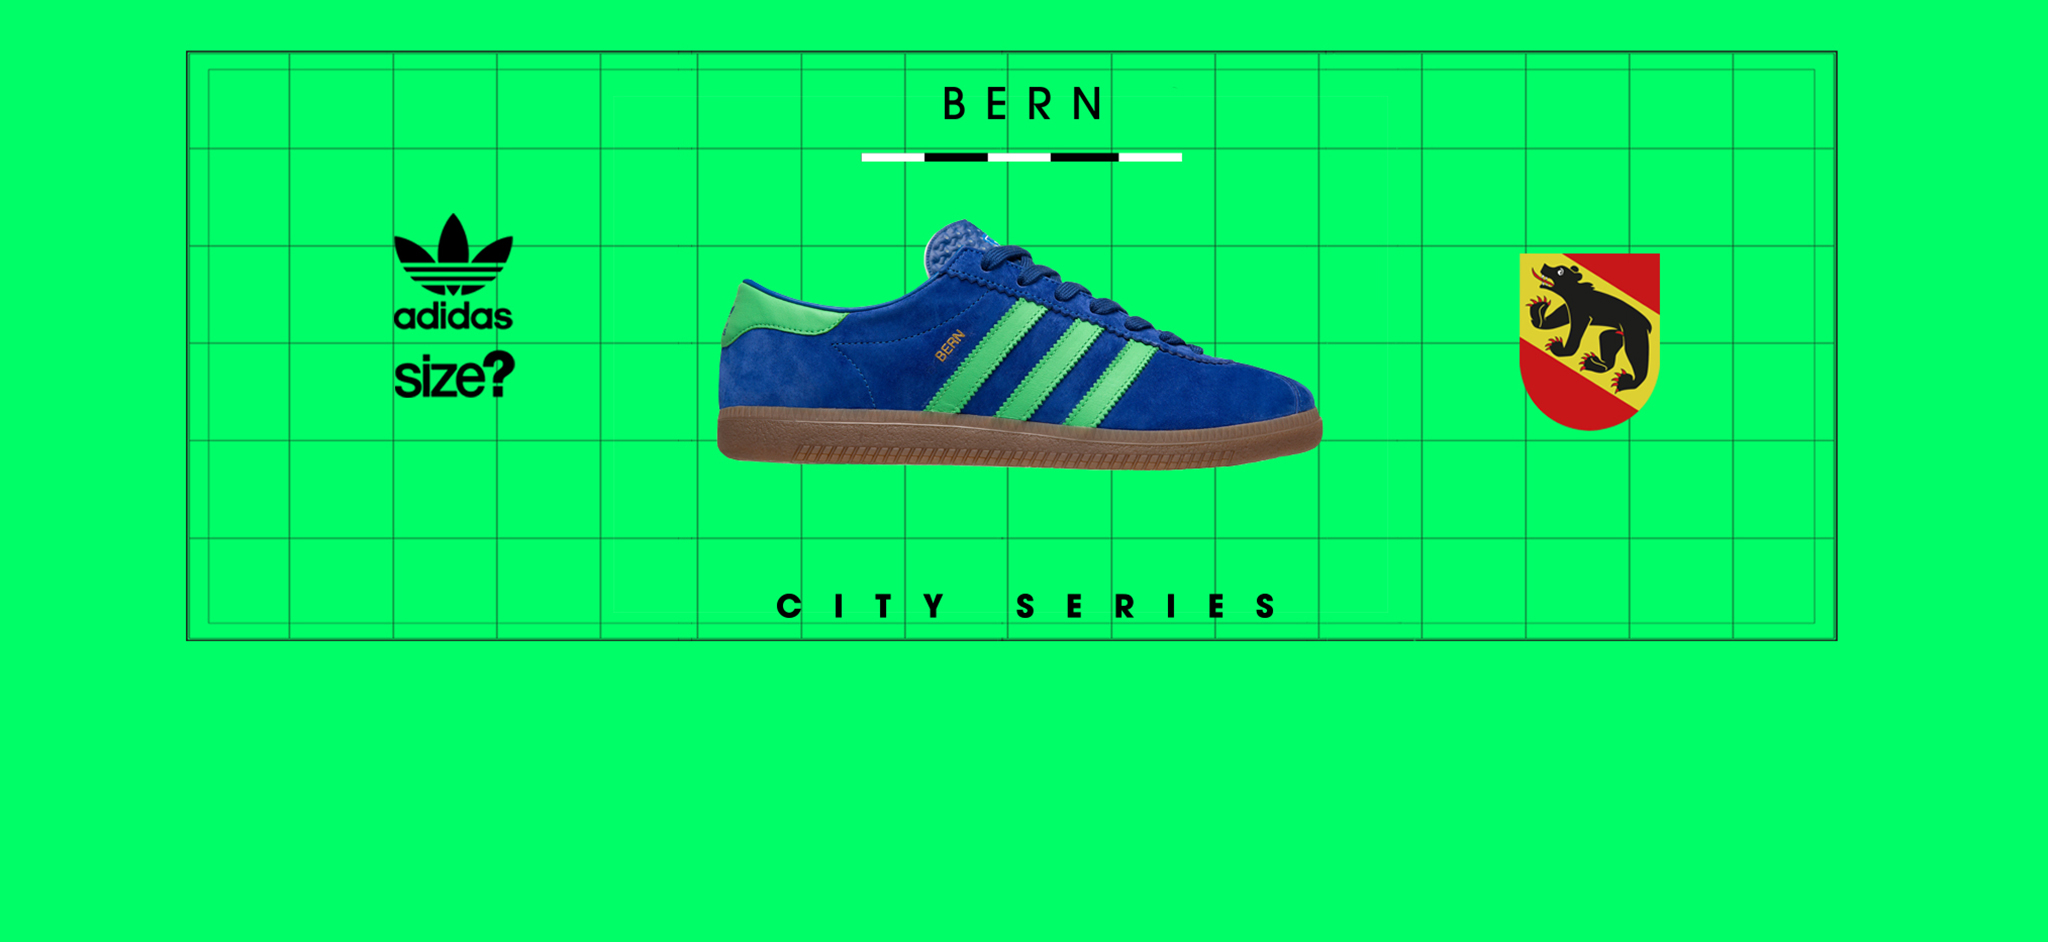 5a71b1405 adidas Originals Bern  City Series